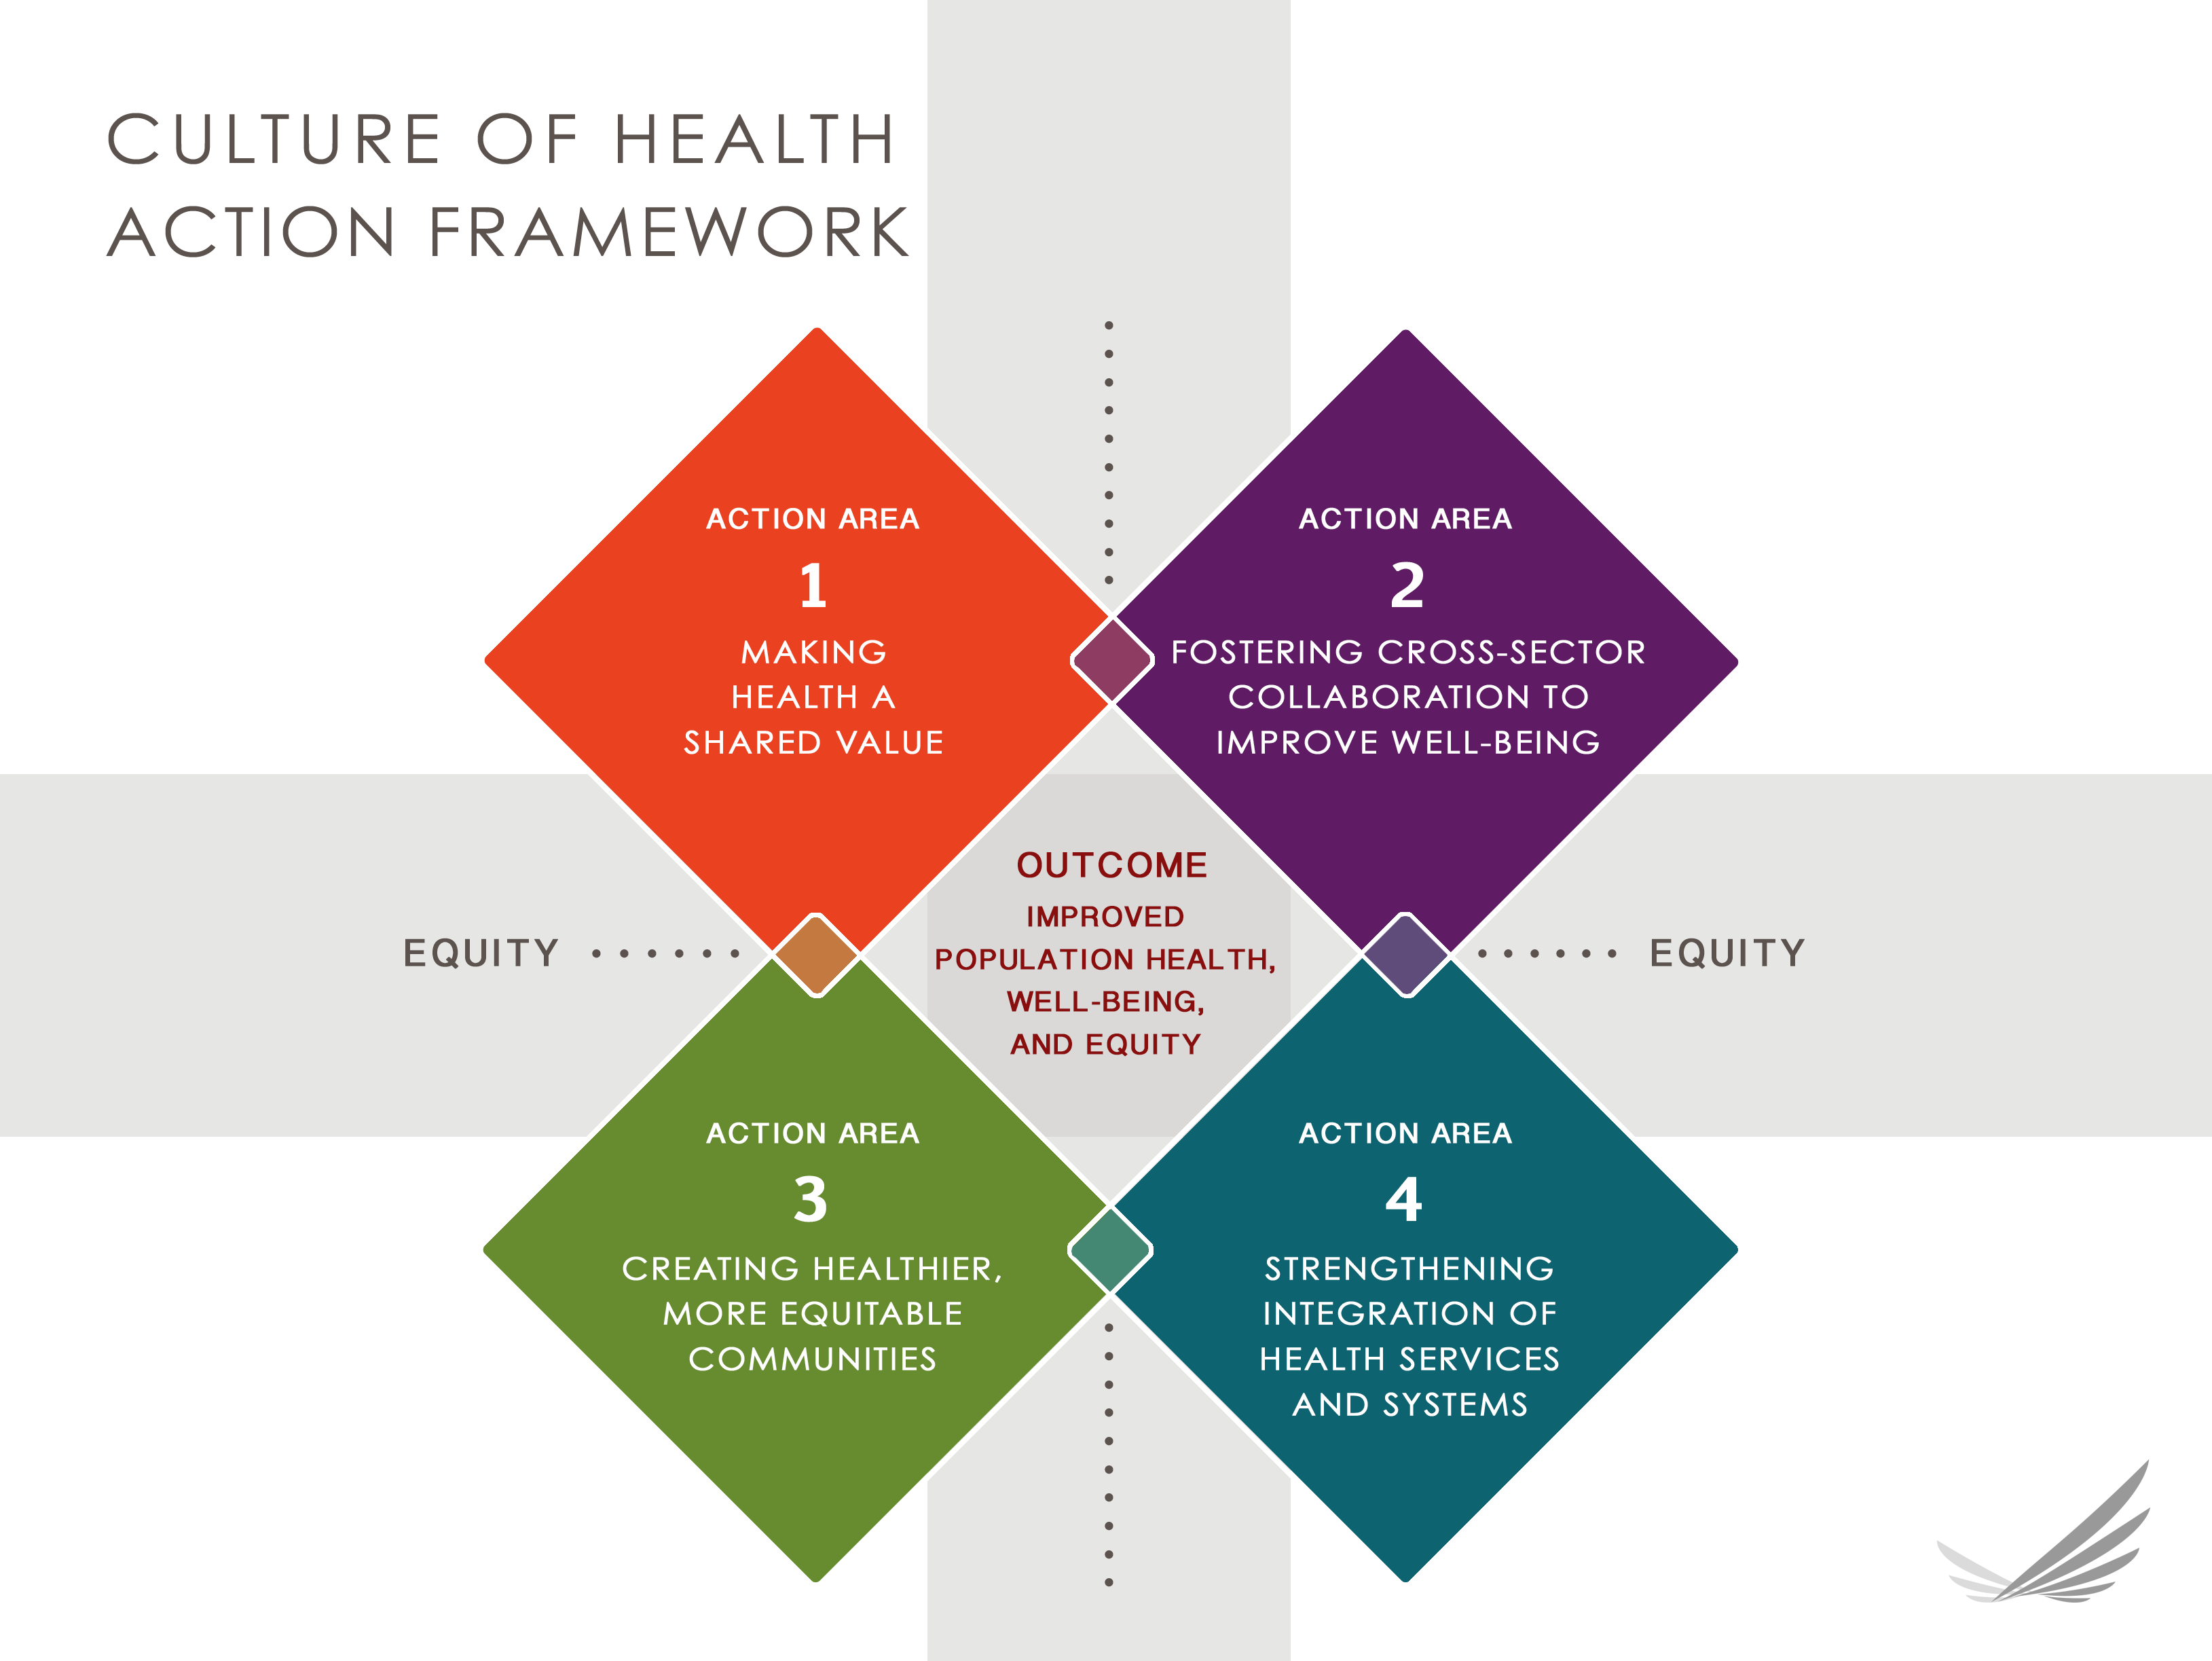 a cultural framework By defining alcohol culture and providing a lens for designing and implementing programs, public health workers and others with an interest in shifting drinking cultures can use the framework as a planning tool to reduce alcohol-related harm.